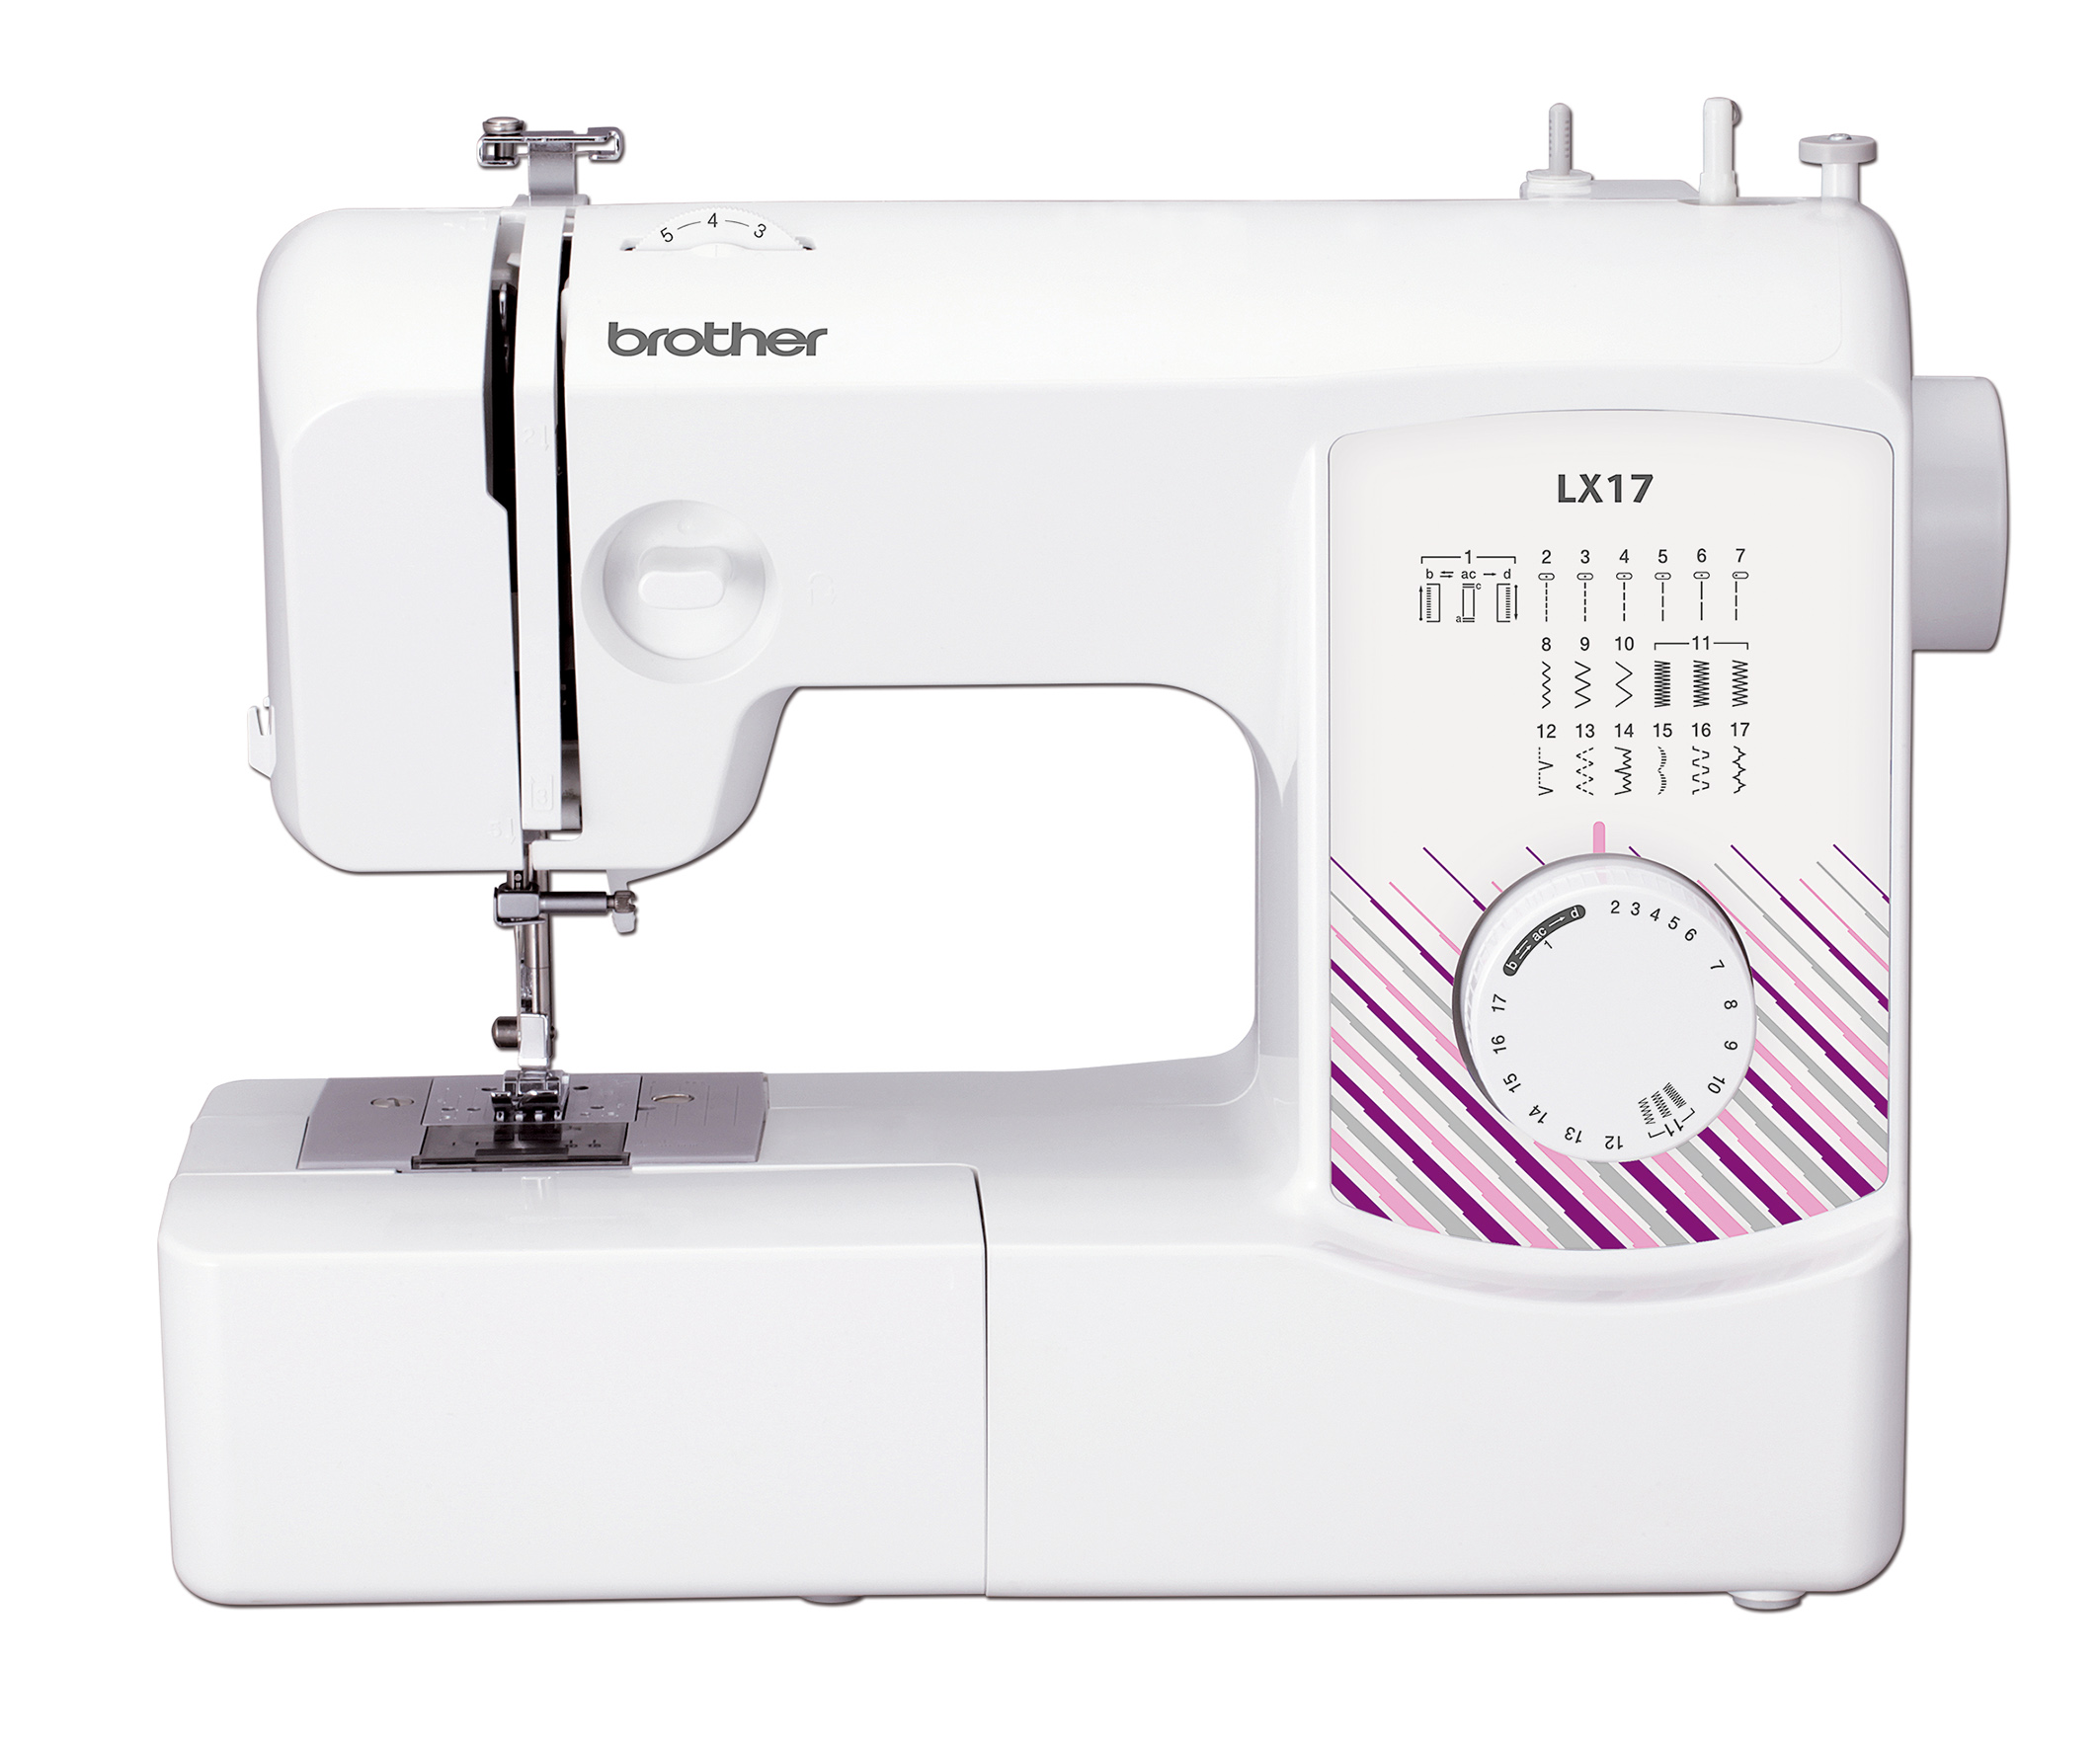 brother lx17 sewing machine reviews sew magazine. Black Bedroom Furniture Sets. Home Design Ideas